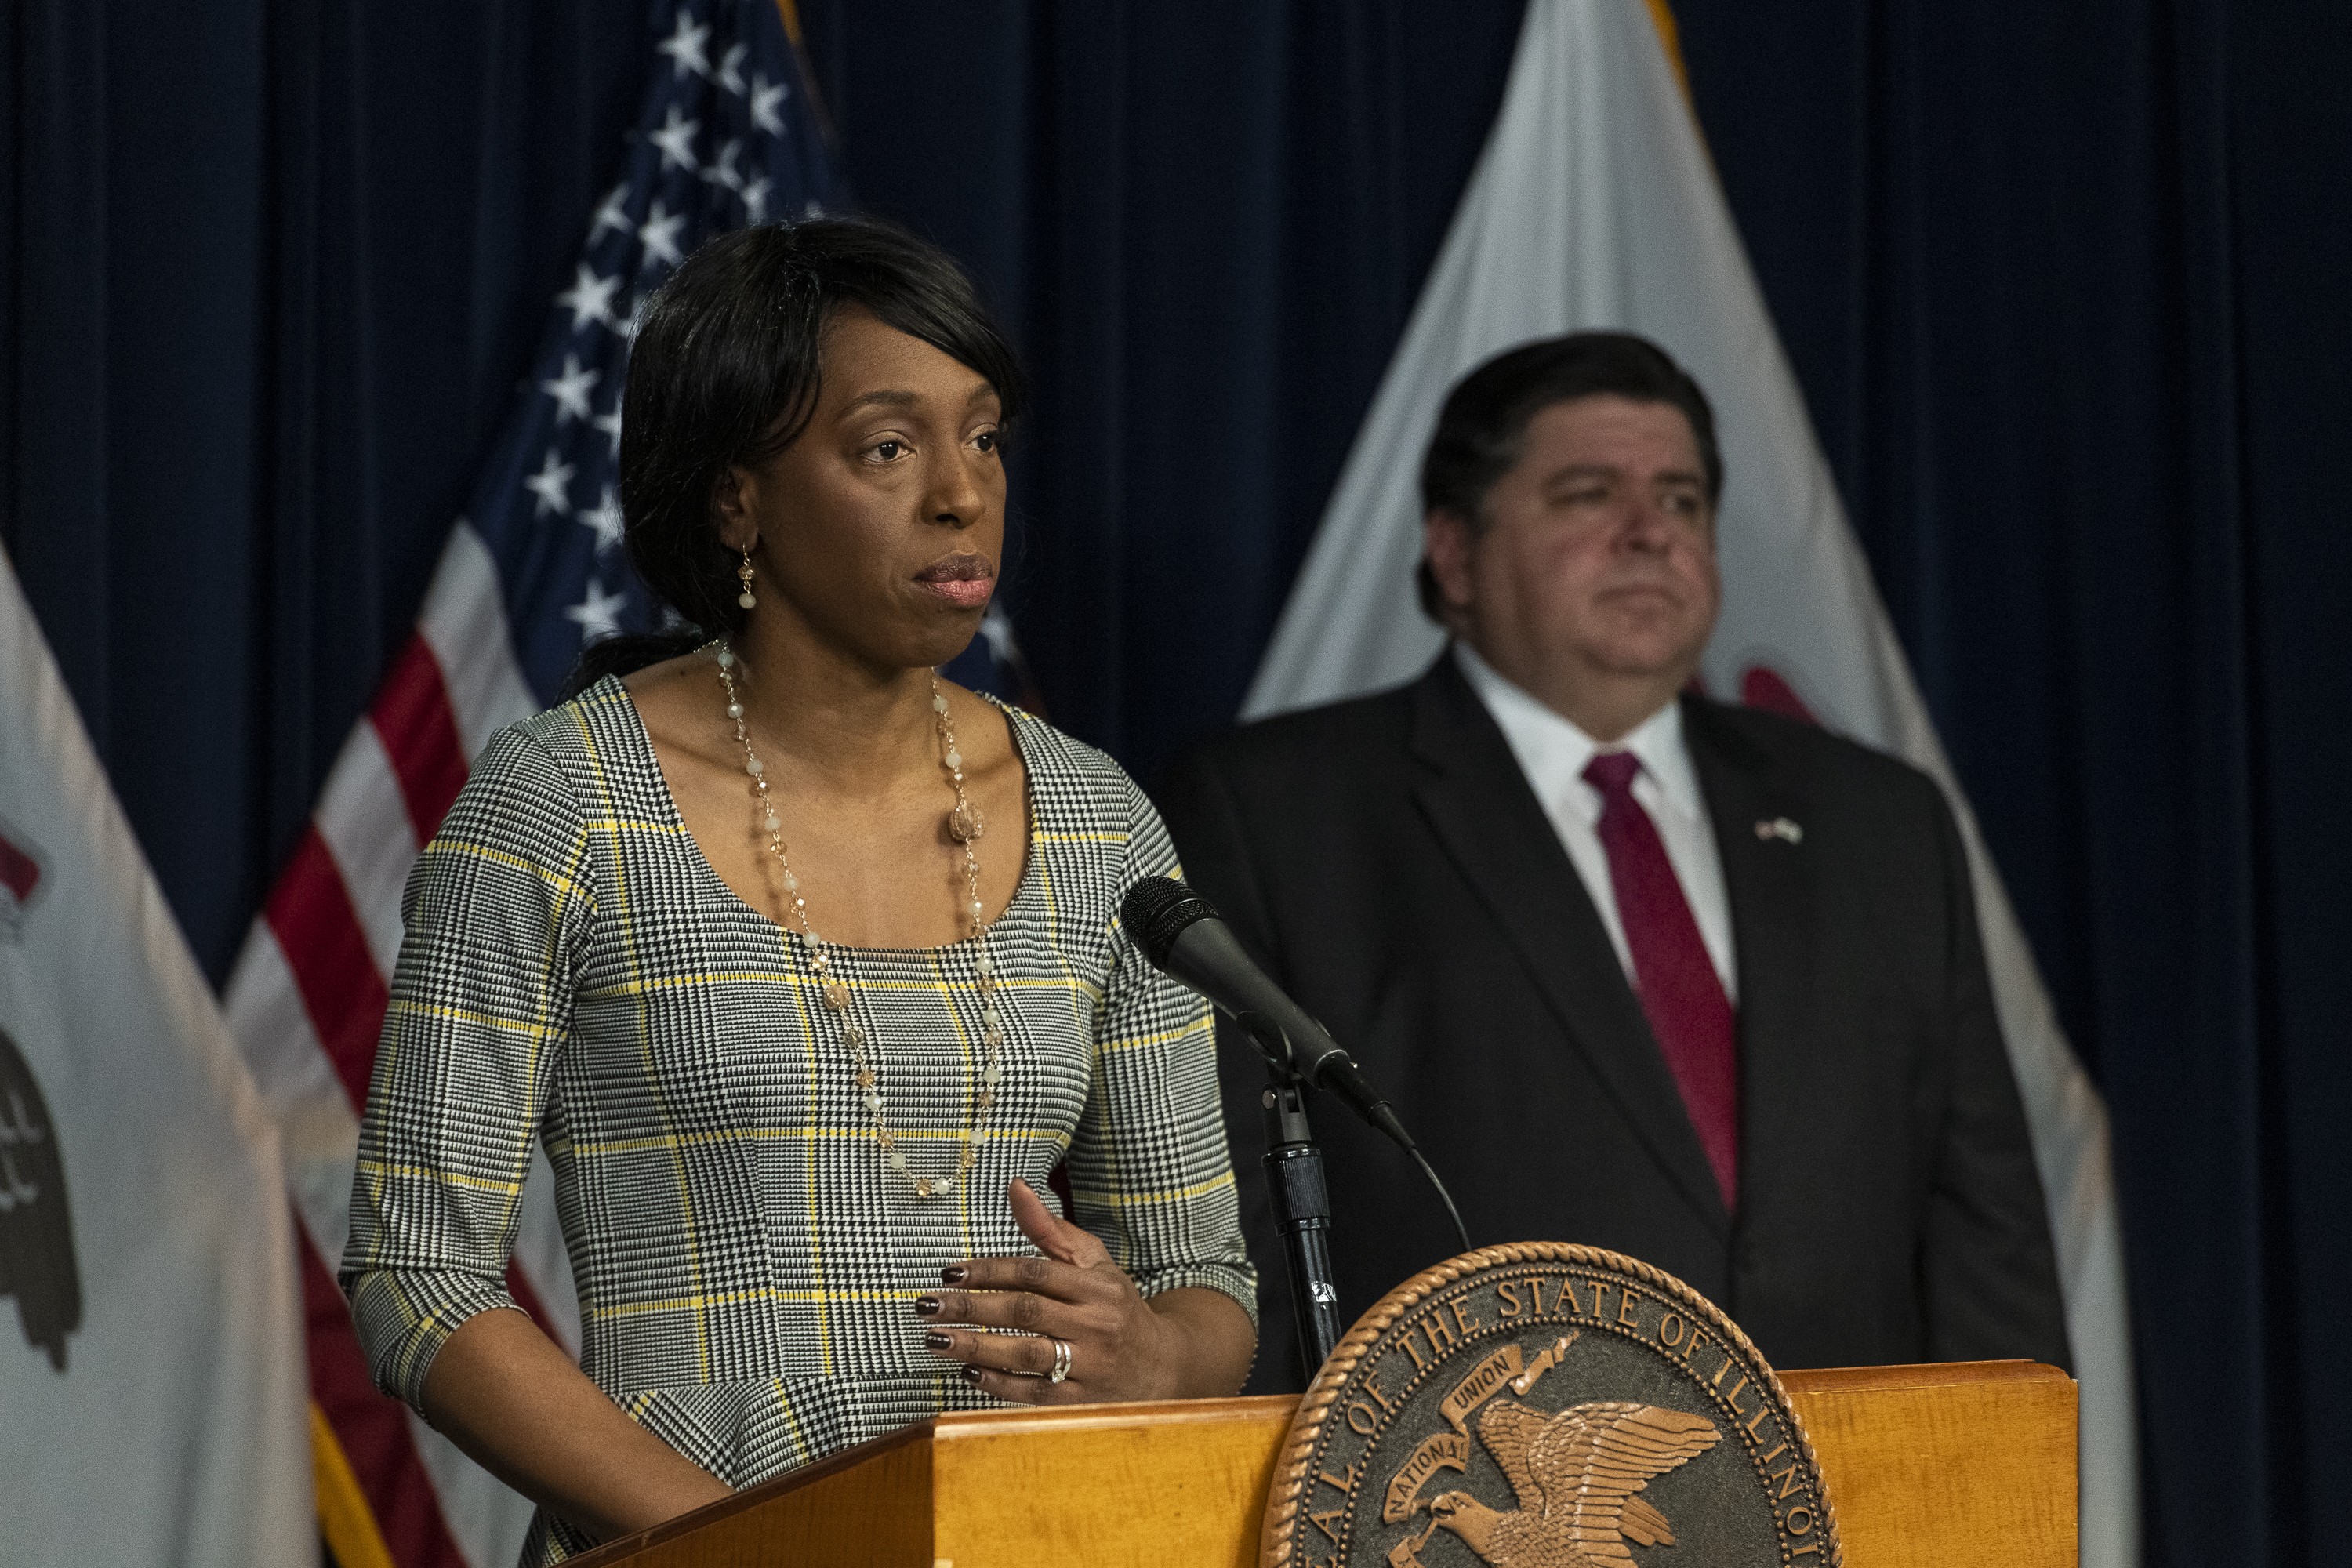 Dr. Ngozi Ezike, director of the Illinois Department of Public Health, speaks during Gov. J.B. Pritzker's daily coronavirus news conference at the Thompson Center in Chicago, Friday, April 17, 2020.   Tyler LaRiviere/Sun-Times